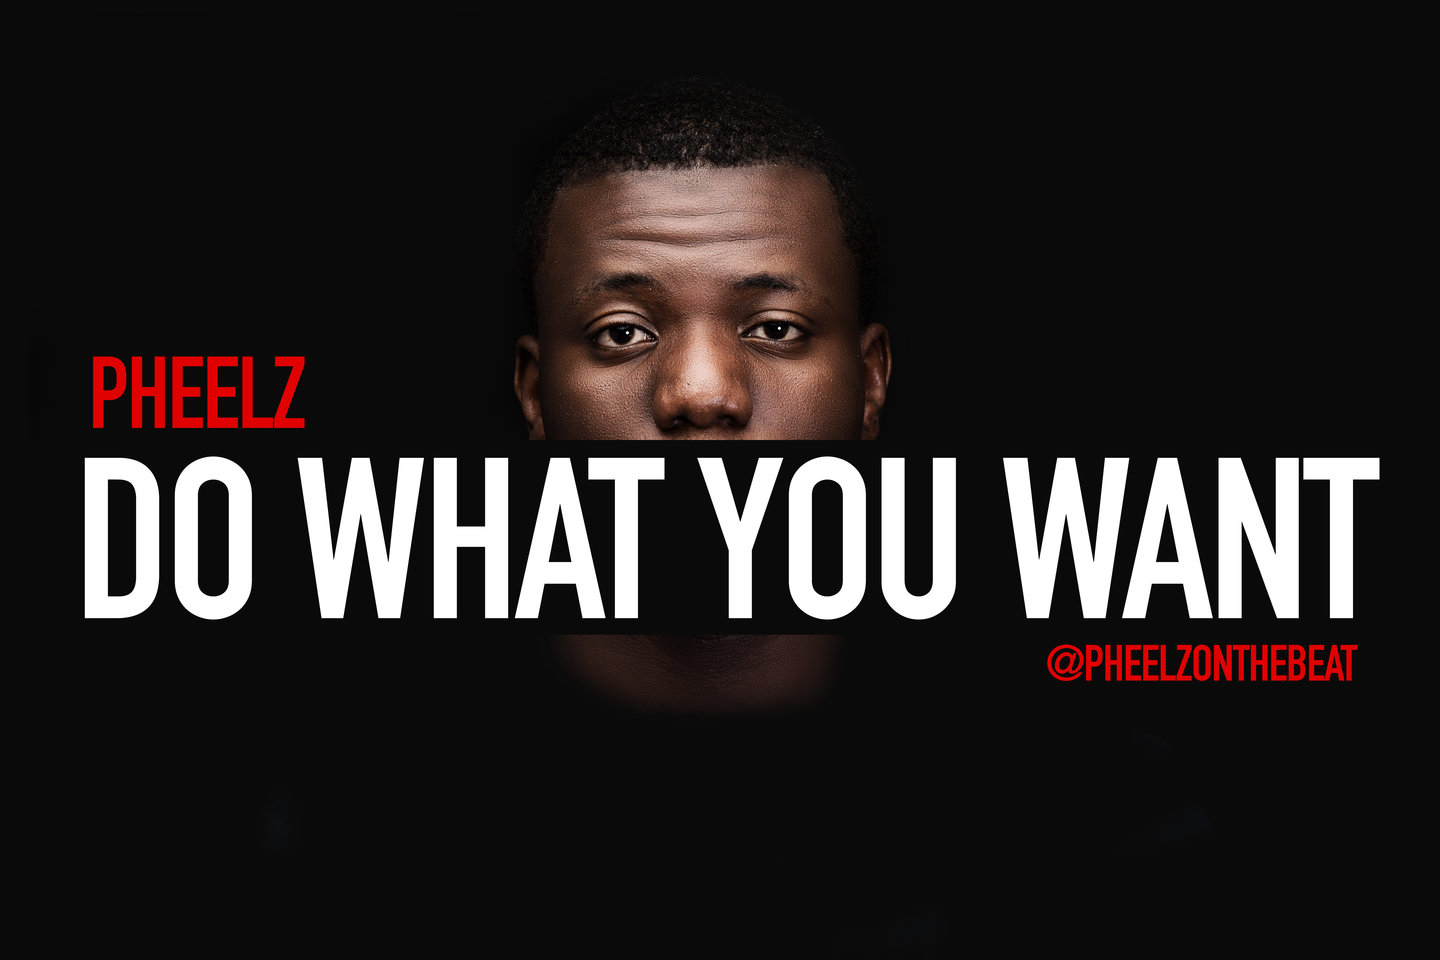 Pheelz - Do What You Want (prod. Pheelz)